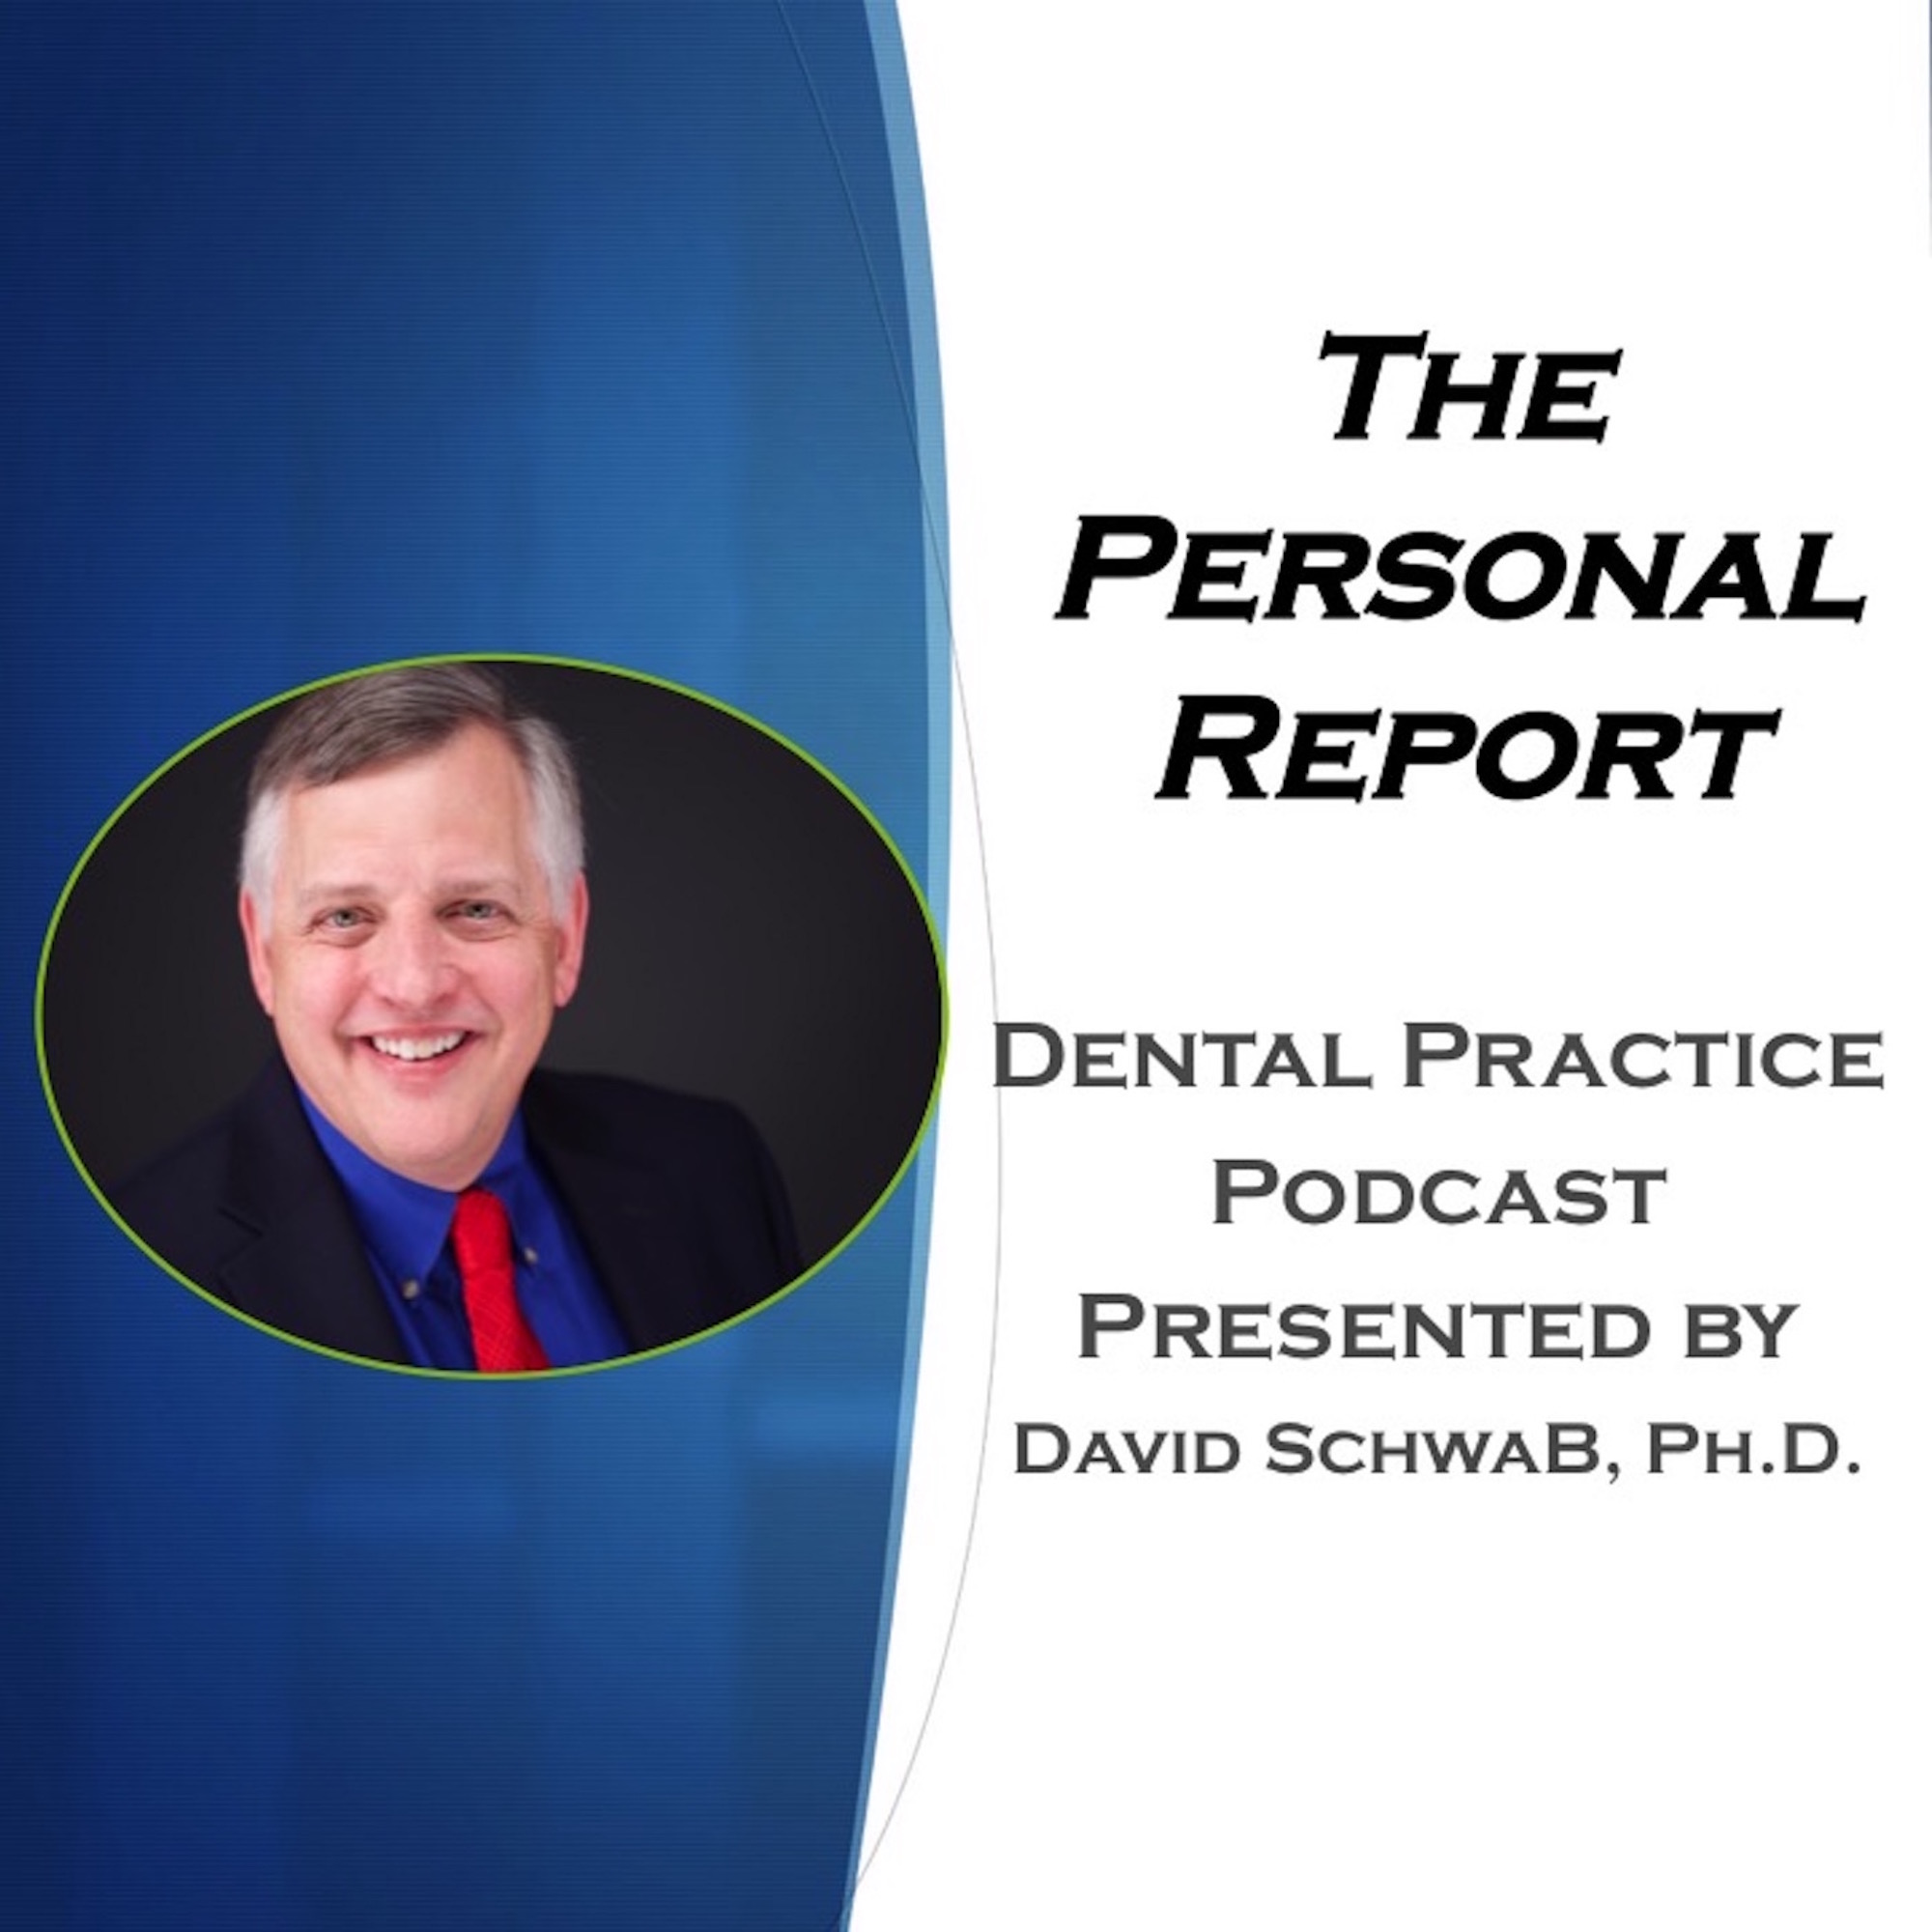 The Personal Report: Dental Practice Podcast